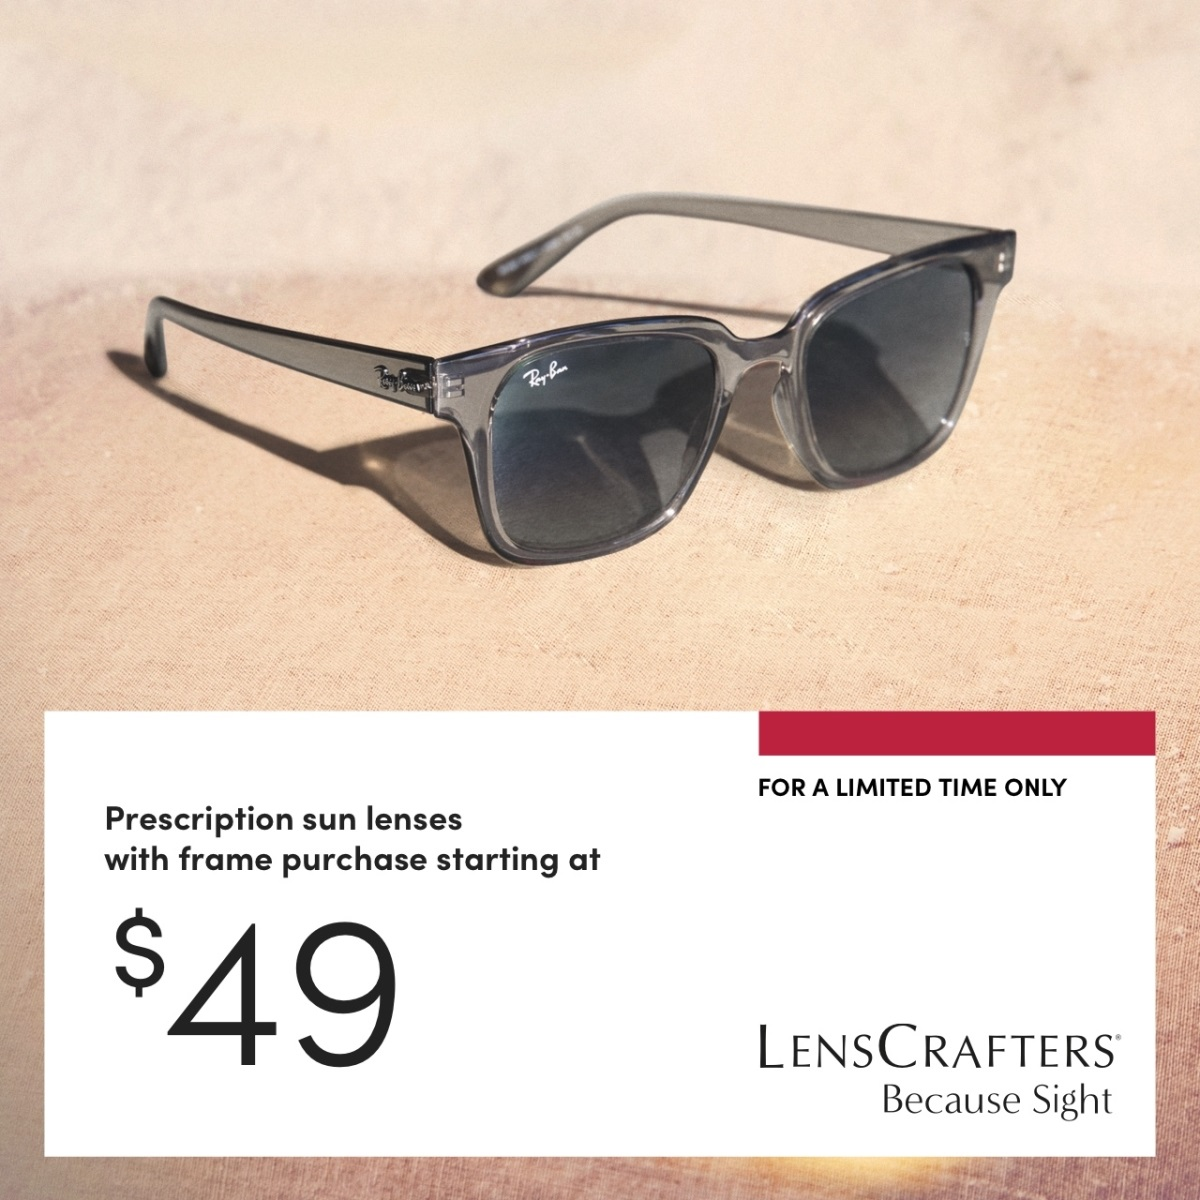 Prescription sun lenses starting at $49 with frame purchase. Limited time only!